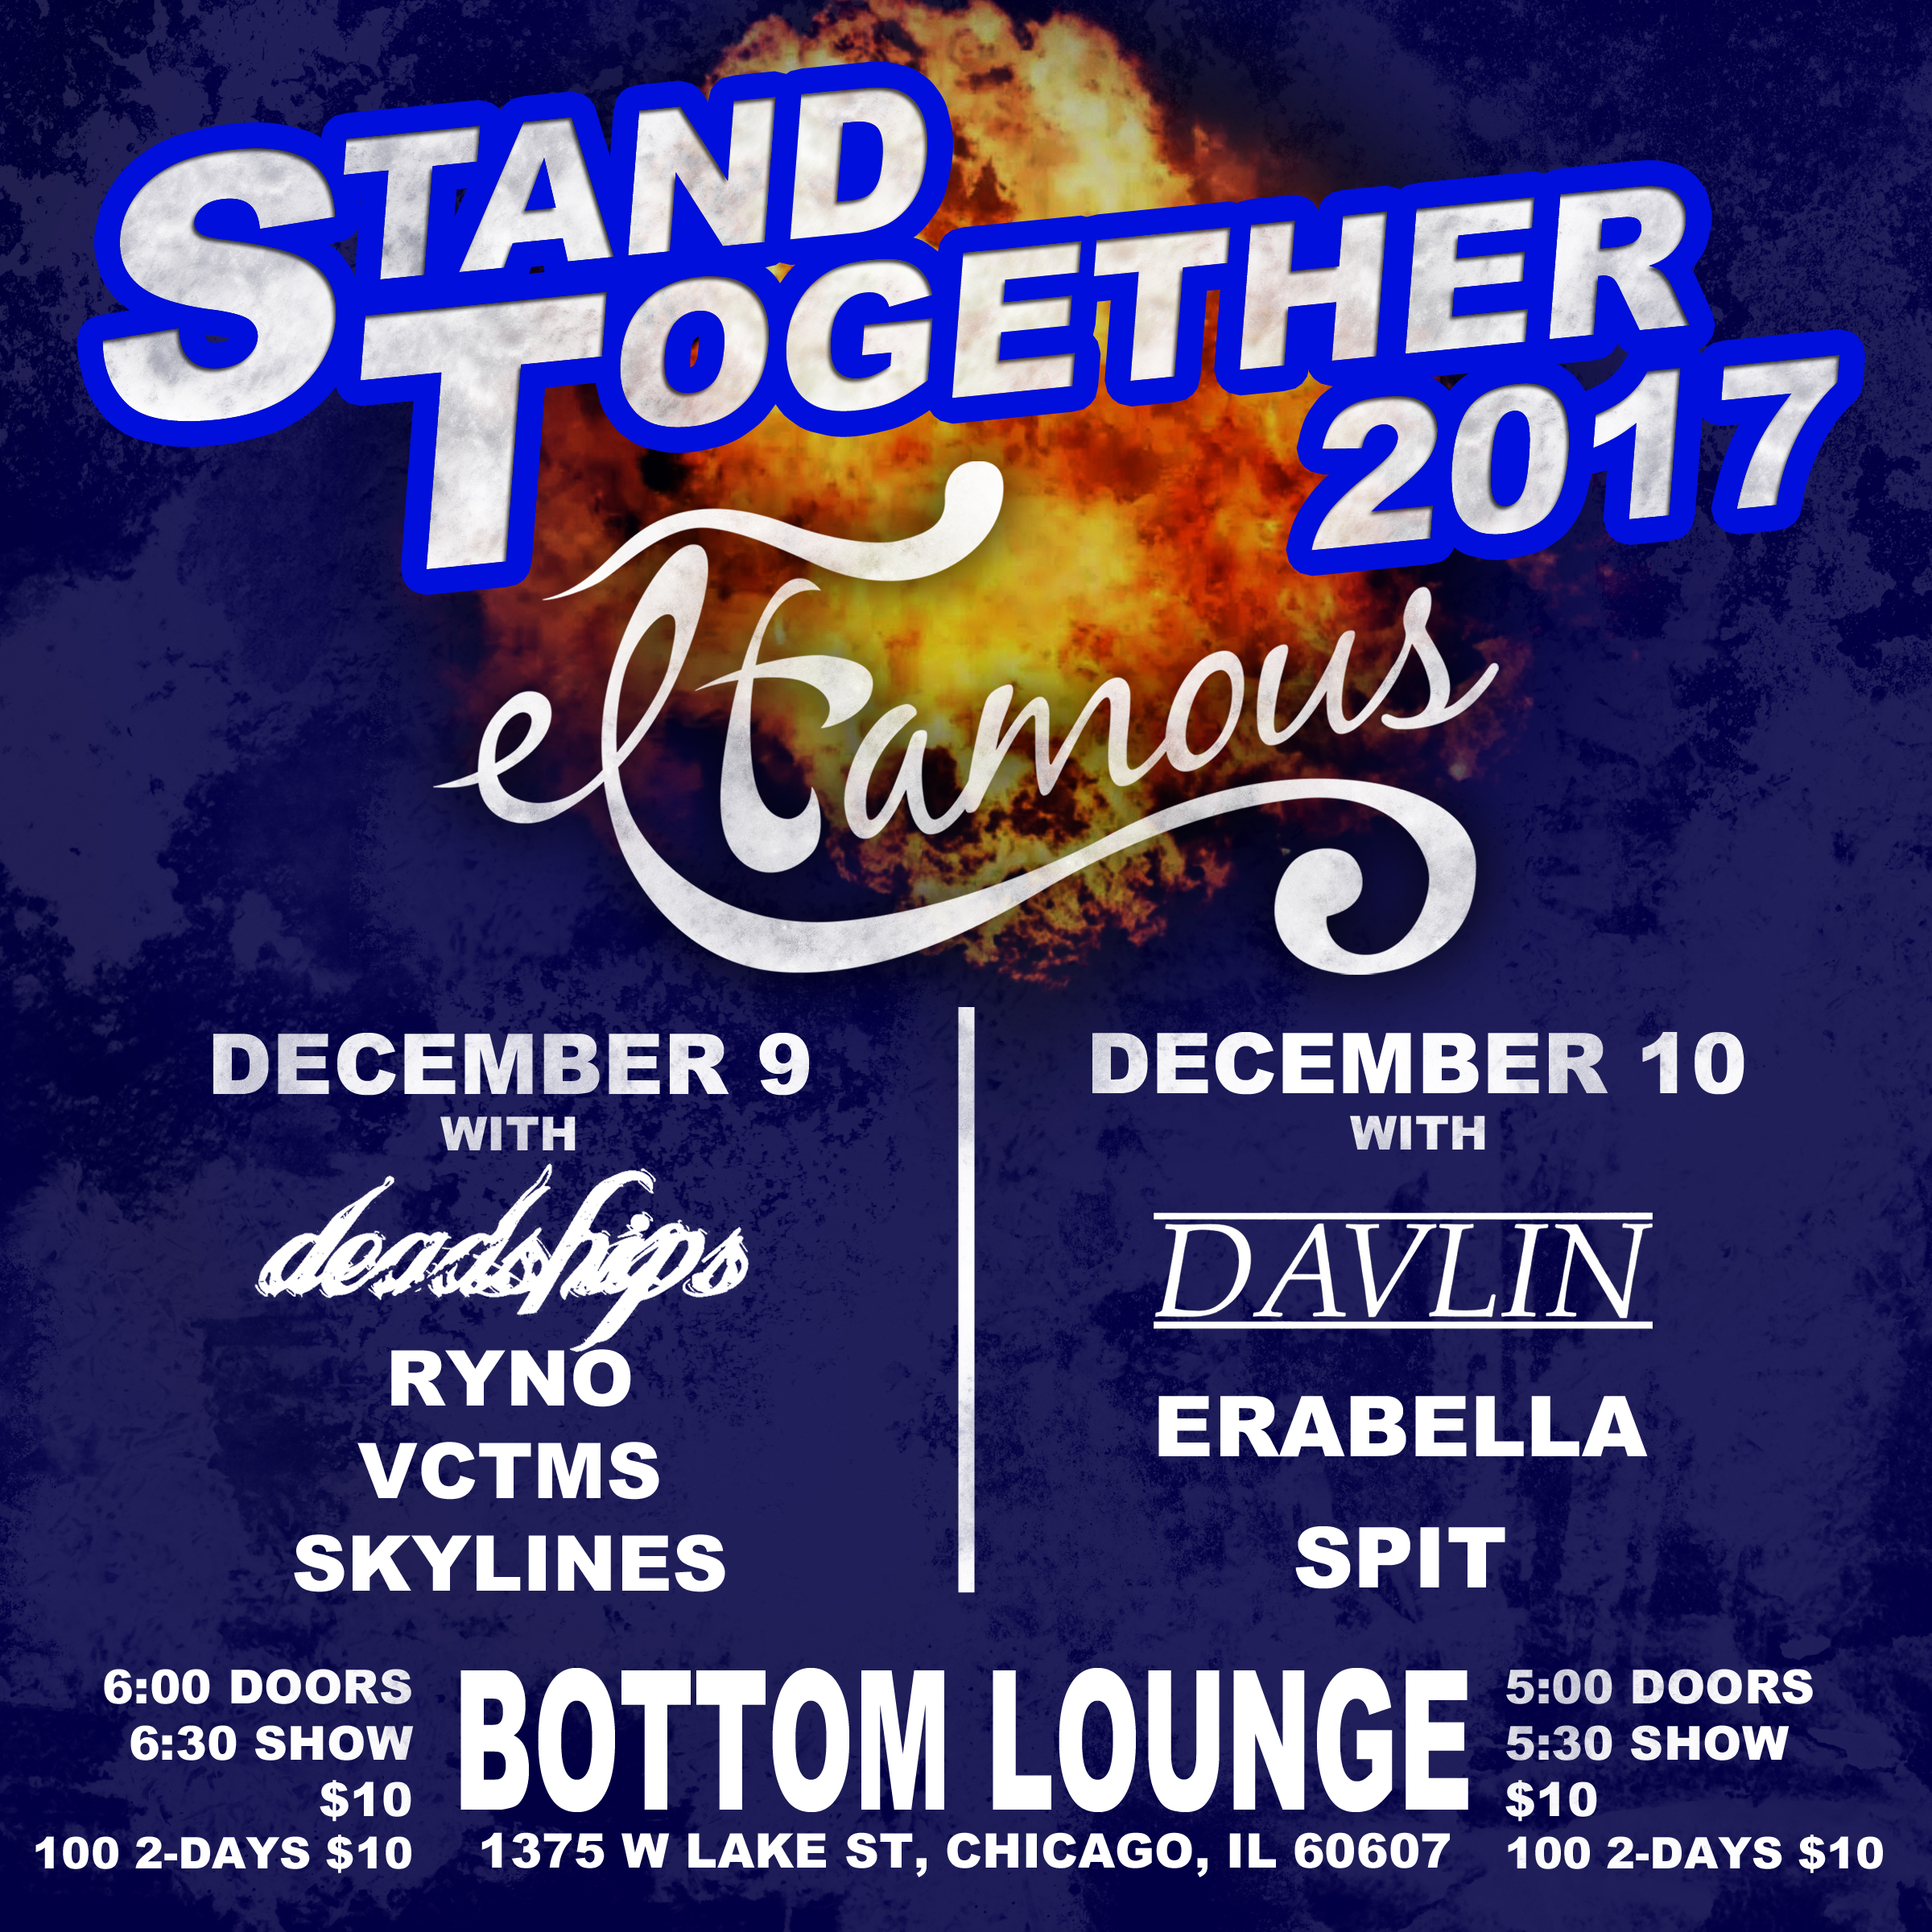 STAND TOGETHER 2017 NIGHT ONE: EL FAMOUS * DEADSHIPS * RYNO * VCTMS * SKYLINES